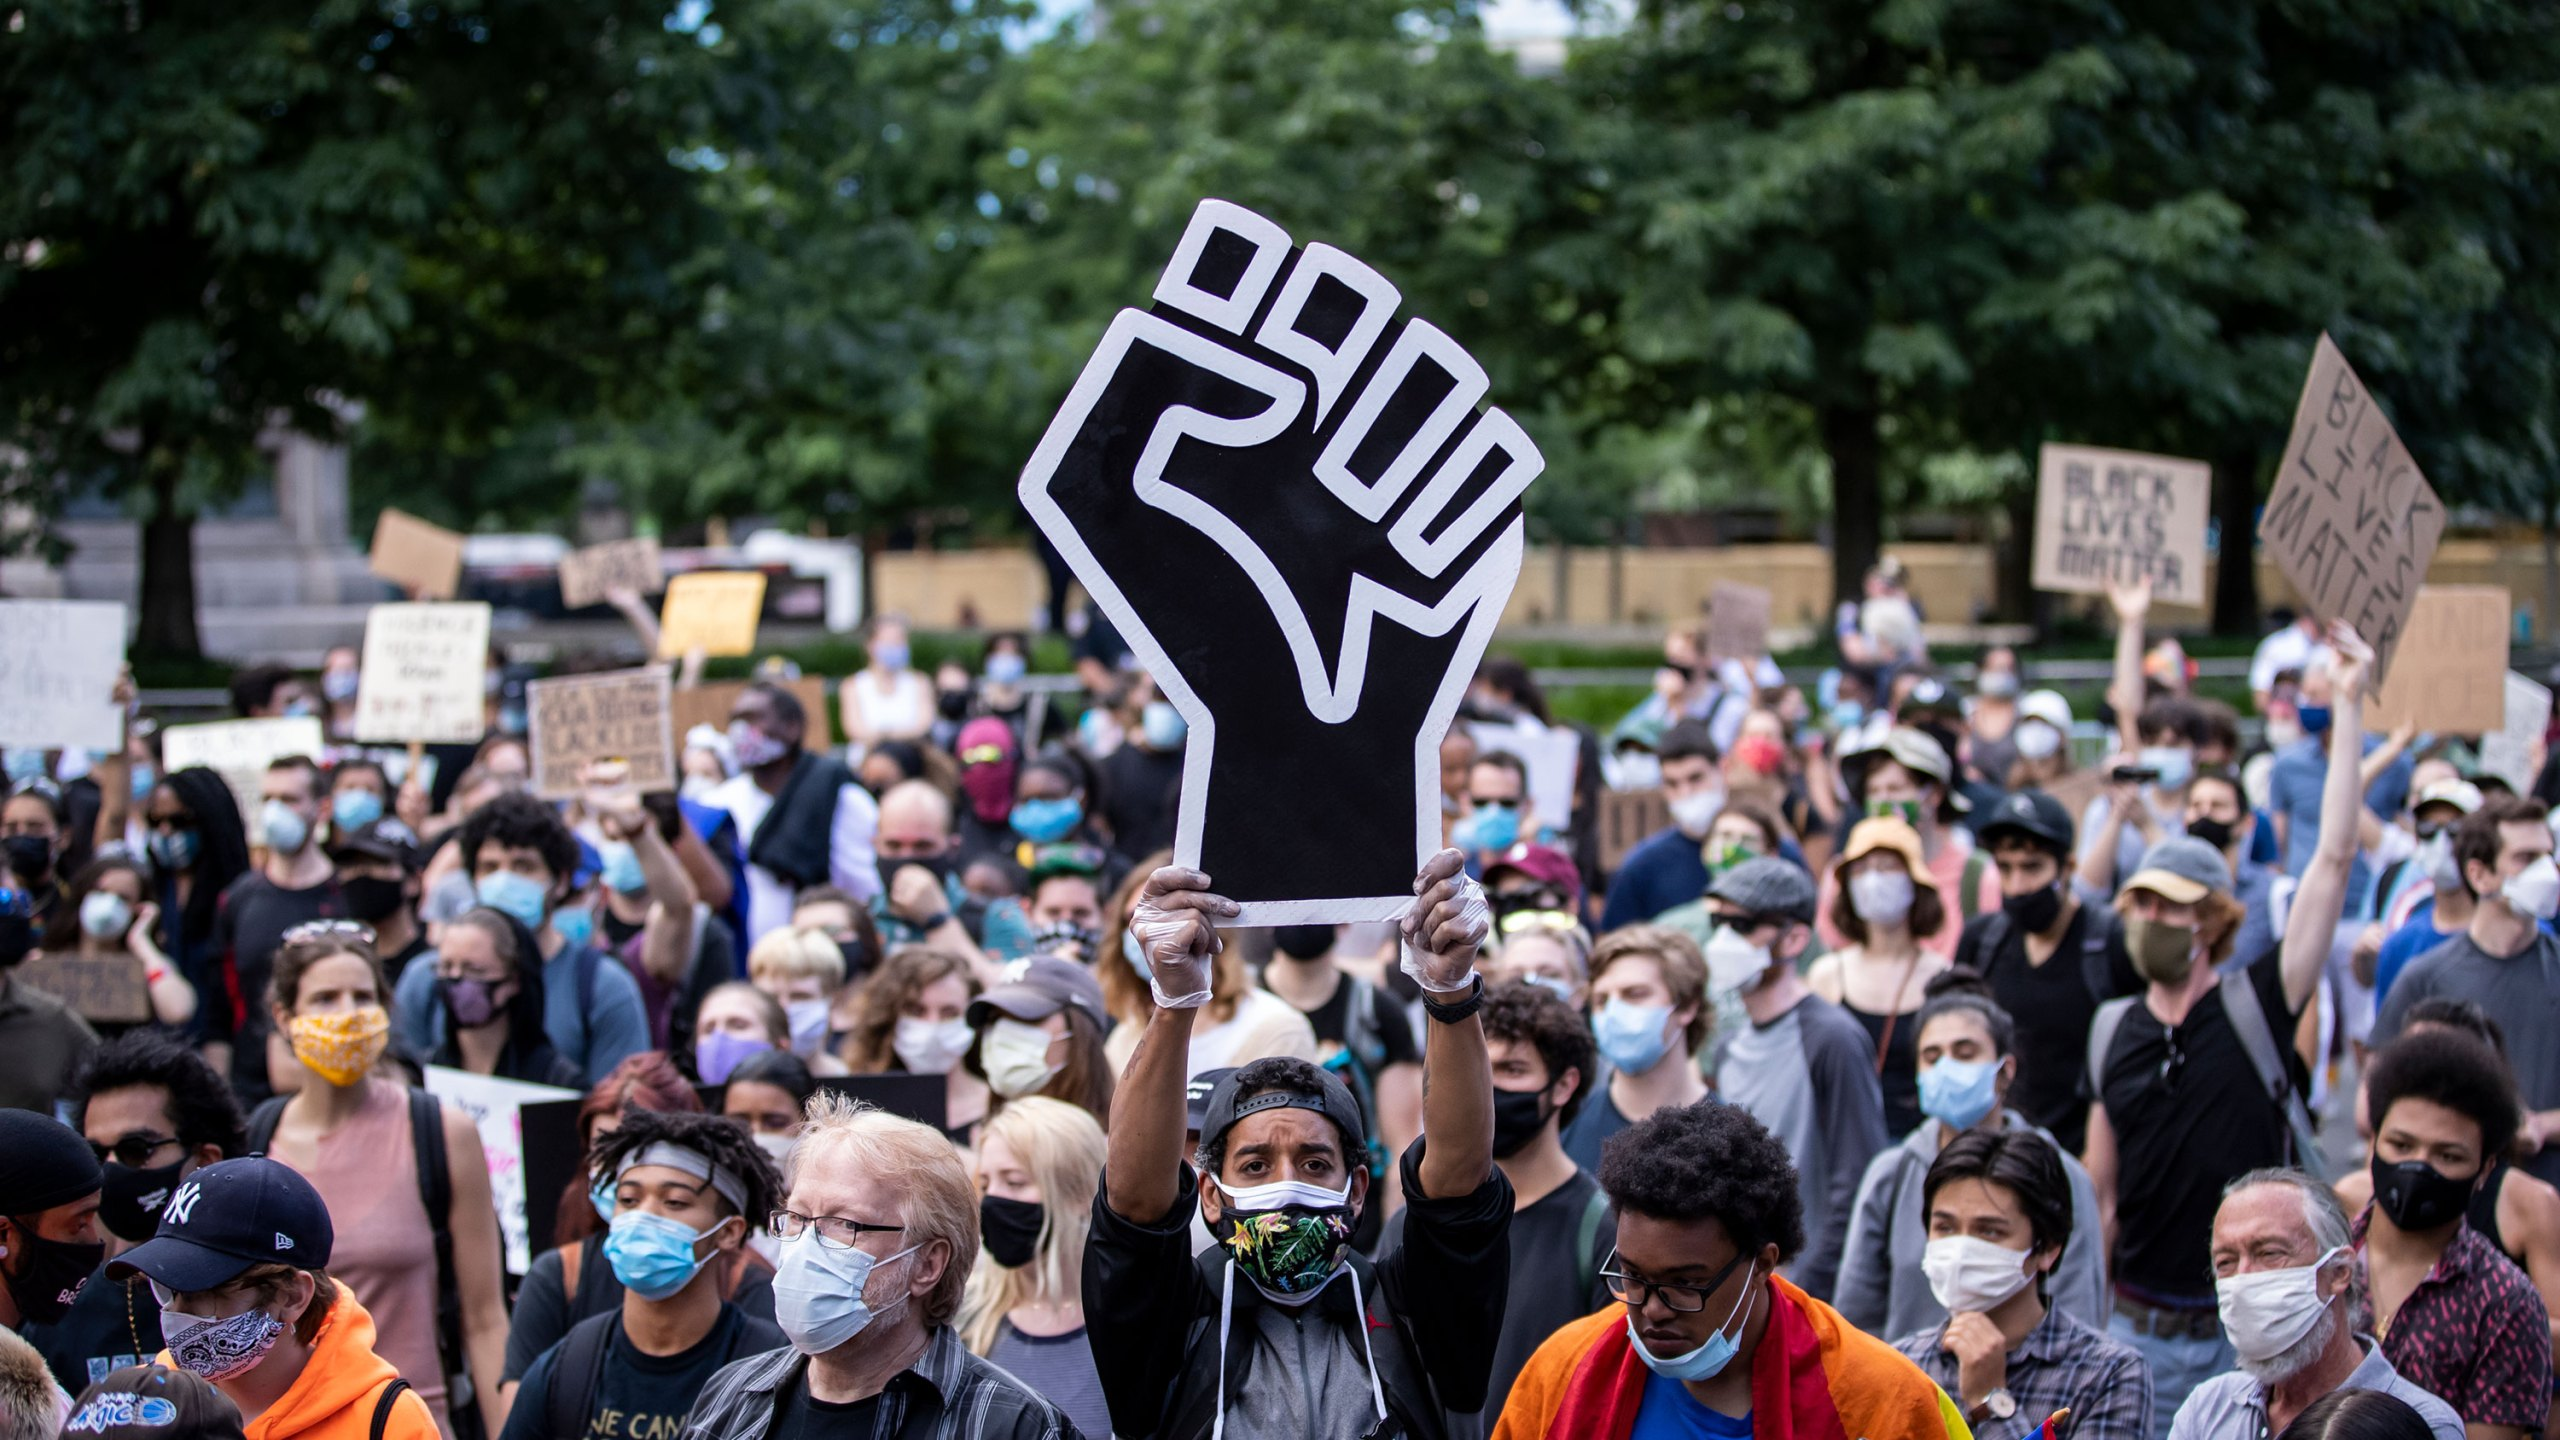 """MANHATTAN, NY - JUNE 14: A protester wearing a mask holds a large black power raised fist in the middle of the crowd that gathered at Columbus Circle. This was part of the Warriors of the Garden Peaceful Protest Against President Donald Trump's 74th Birthday that started at Trump International Tower and drew large crowds. Protesters continue taking to the streets across America and around the world after the killing of George Floyd at the hands of a white police officer Derek Chauvin that was kneeling on his neck during for eight minutes, was caught on video and went viral. During his arrest as Floyd pleaded, """"I Can't Breathe"""". The protest are attempting to give a voice to the need for human rights for African American's and to stop police brutality against people of color. They are also protesting deep-seated racism in America. Many people were wearing masks and observing social distancing due to the coronavirus pandemic. Photographed in the Manhattan Borough of New York on June 14, 2020, USA. (Photo by Ira L. Black/Corbis via Getty Images)"""